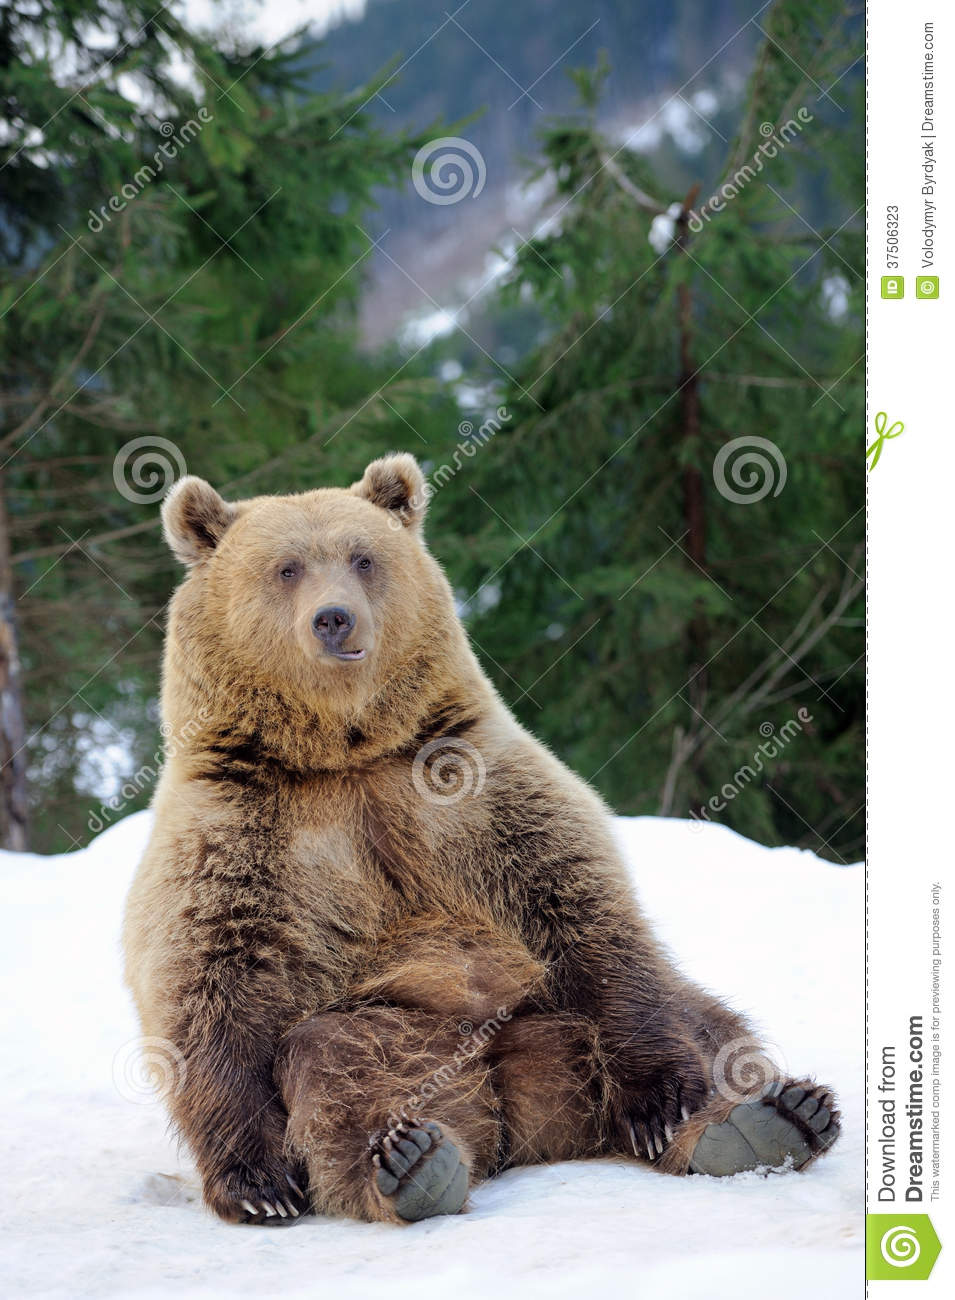 bear in winter stock image image of angry bears animals. Black Bedroom Furniture Sets. Home Design Ideas